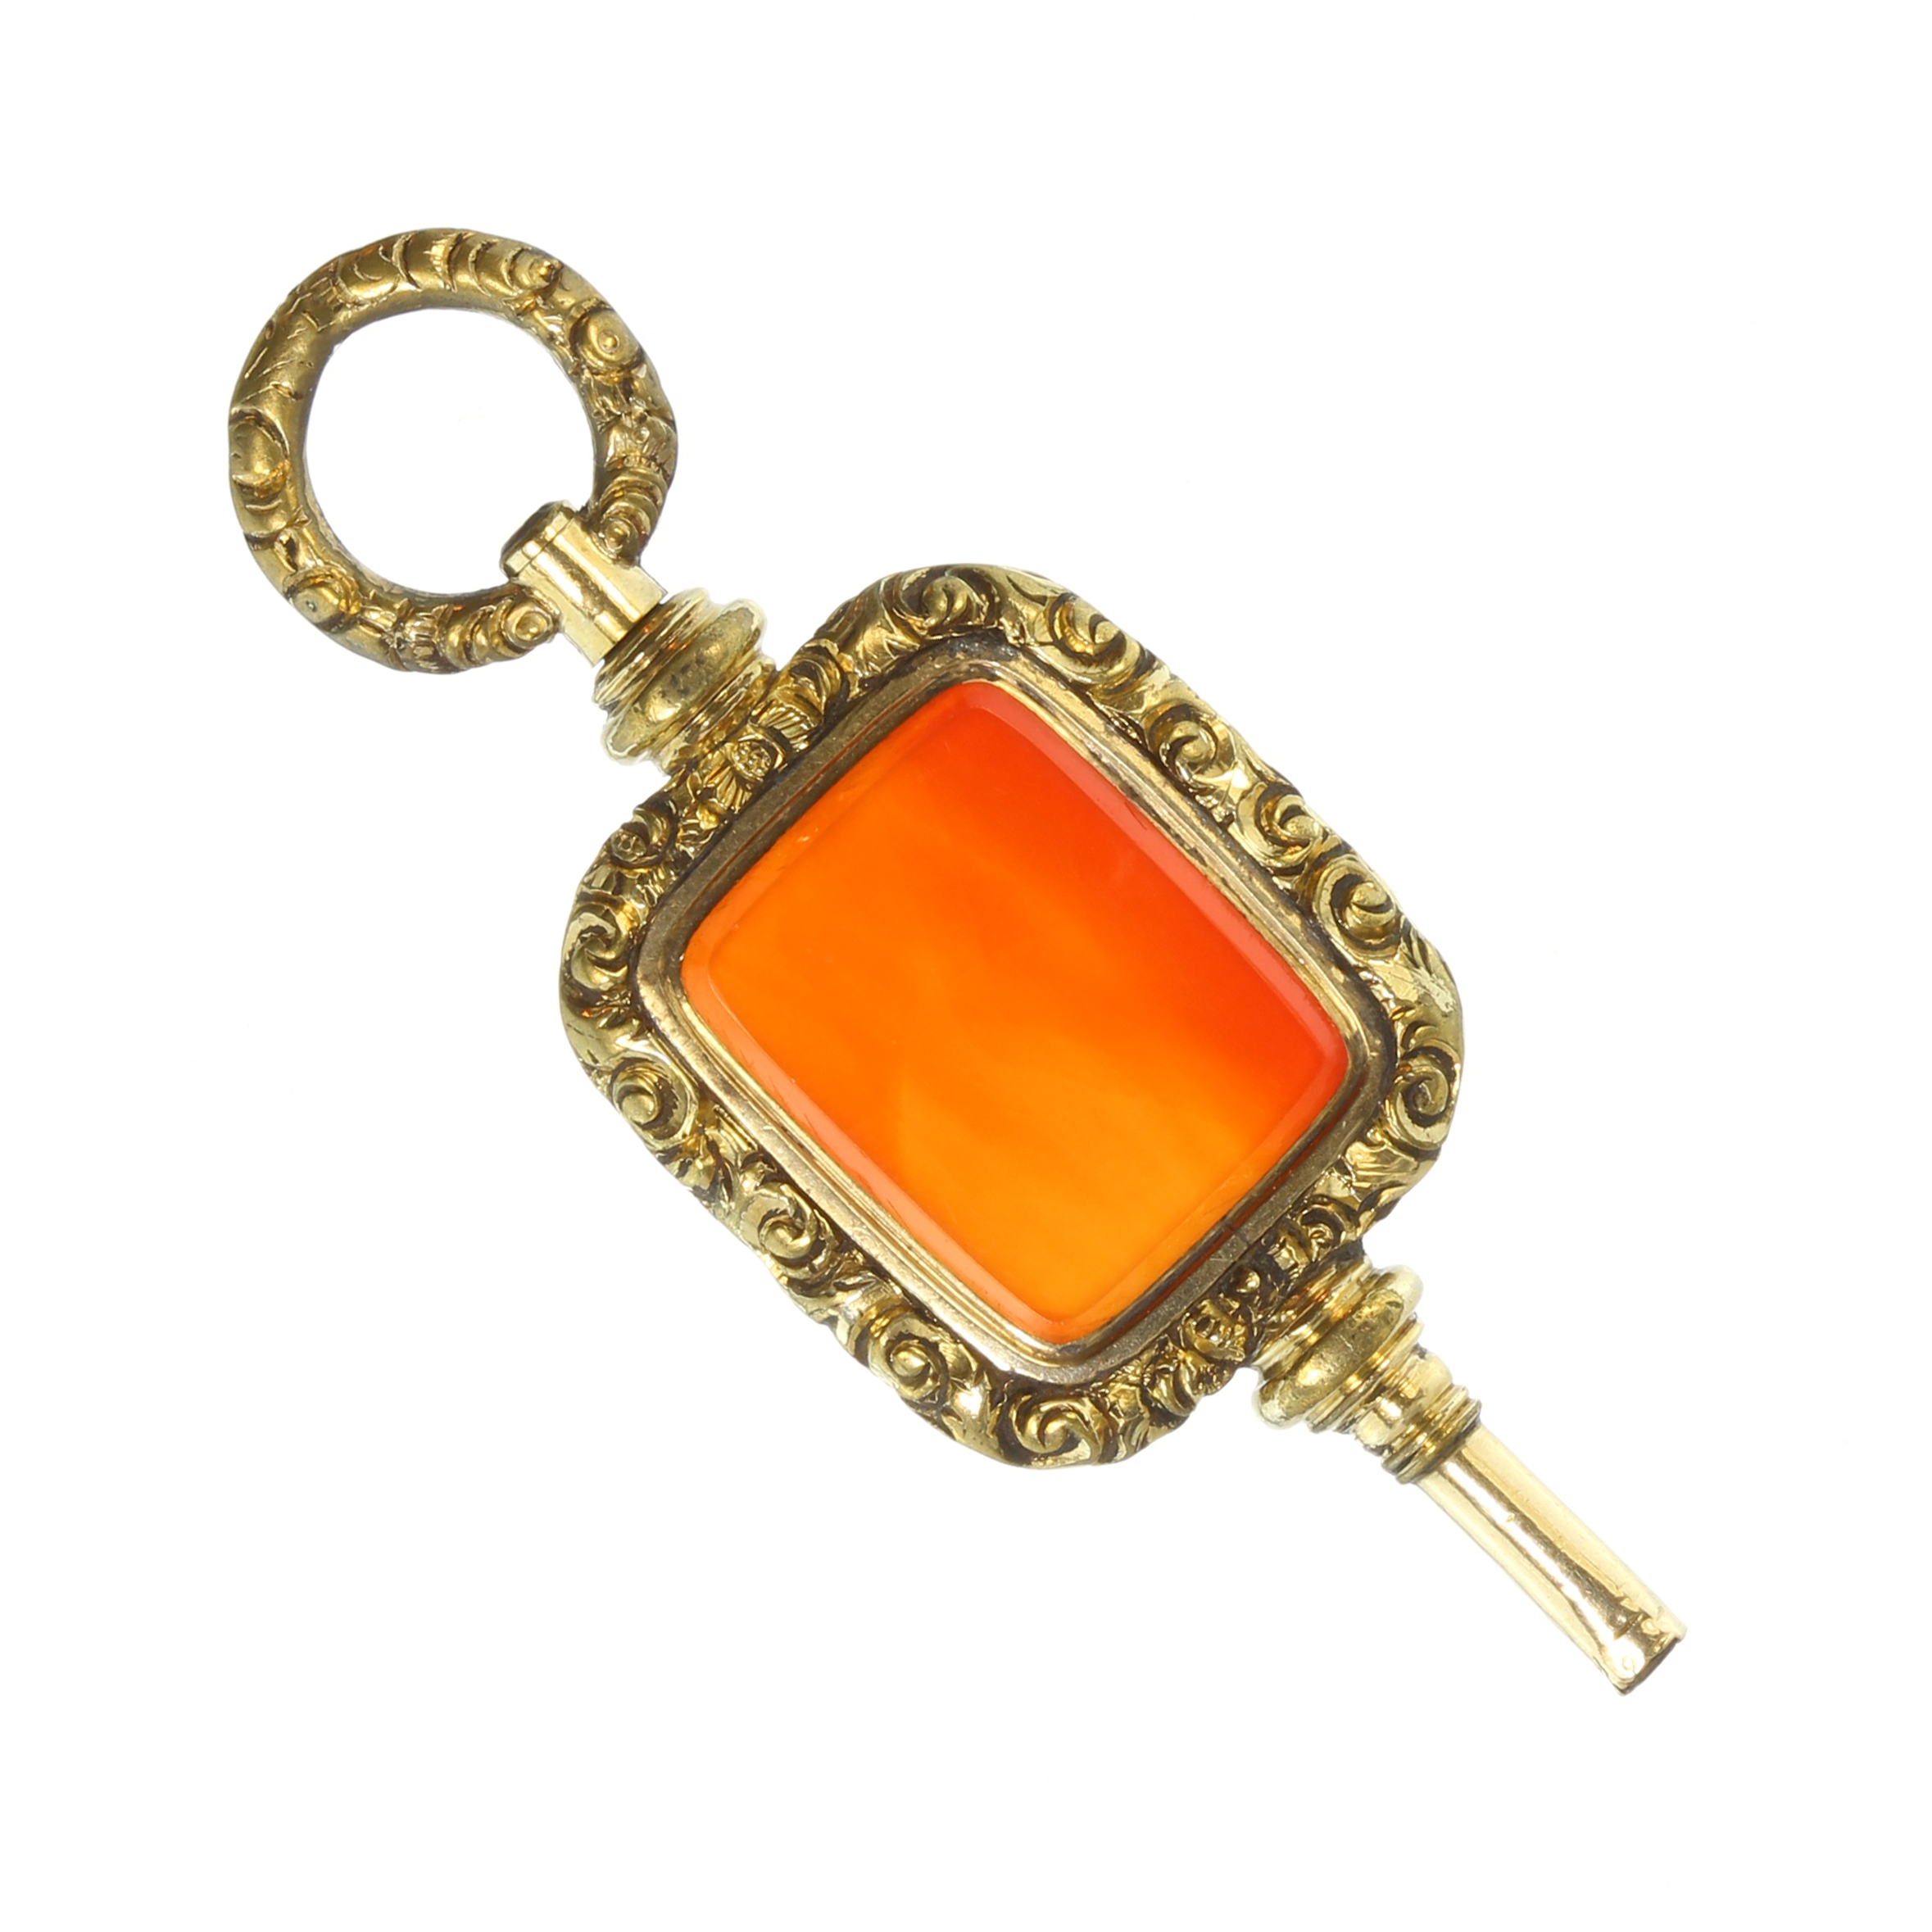 Los 43 - An antique Georgian hardstone fob seal watch key made in pinchbeck and set with a large panel of